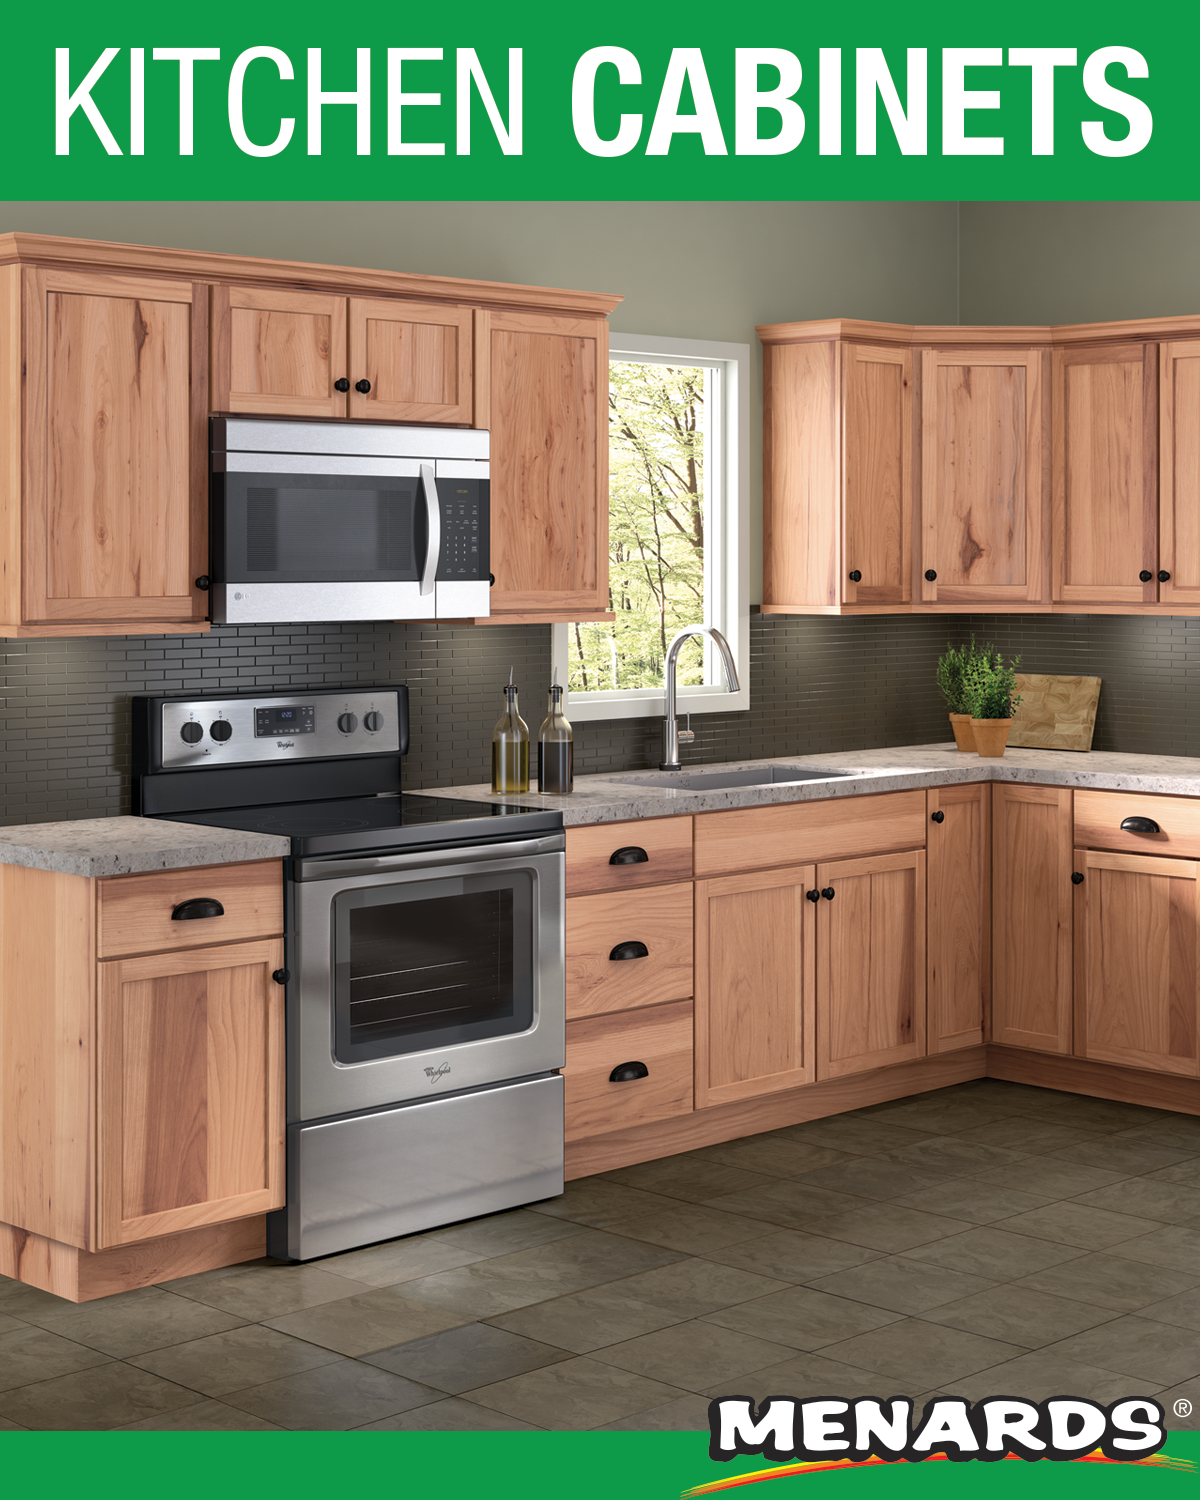 Kitchen Cabinets At Menards Menards Kitchen Kitchen Cabinets Menards Kitchen Cabinets